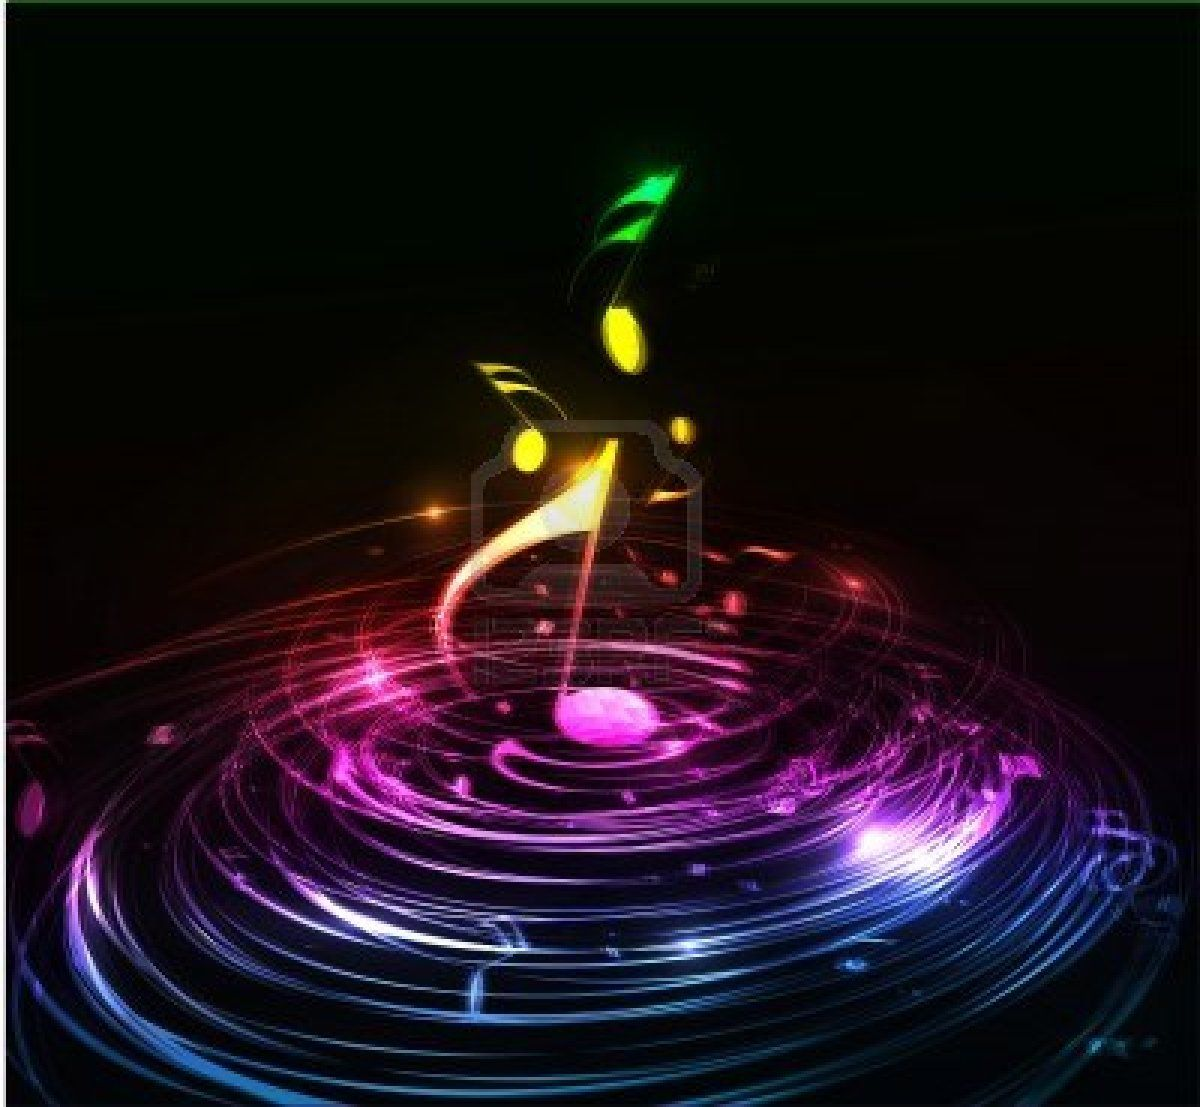 3D Colorful Music Notes Wallpaper Abstract Music Notes